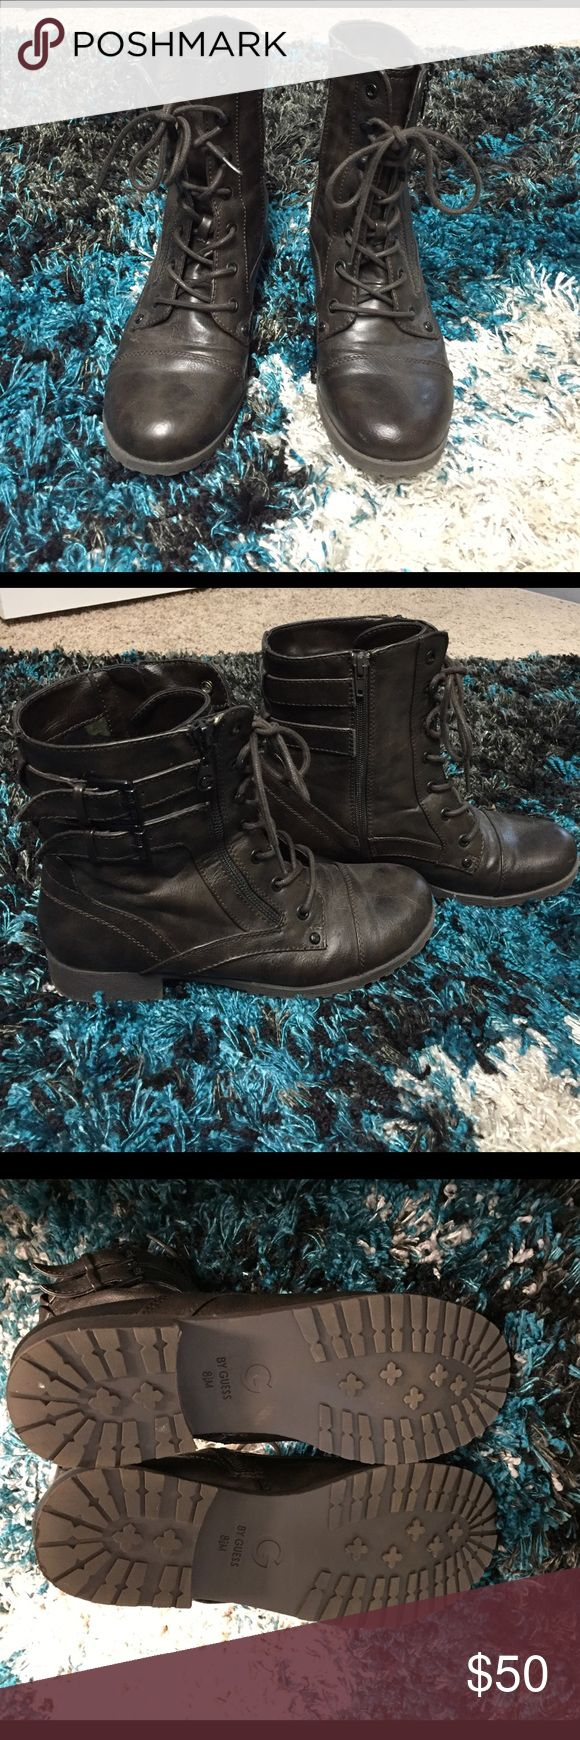 Dark Brown Guess Military Boots Rarely worn Guess boots. Size 8.5 M. They are dark brown with great buckle and zipper accents. They tie up as well as zip up on the inside. Can be laced all the way up or only part way and tied. Look great with skinny jeans. Comfortable, I just haven't worn much. G by Guess Shoes Combat & Moto Boots